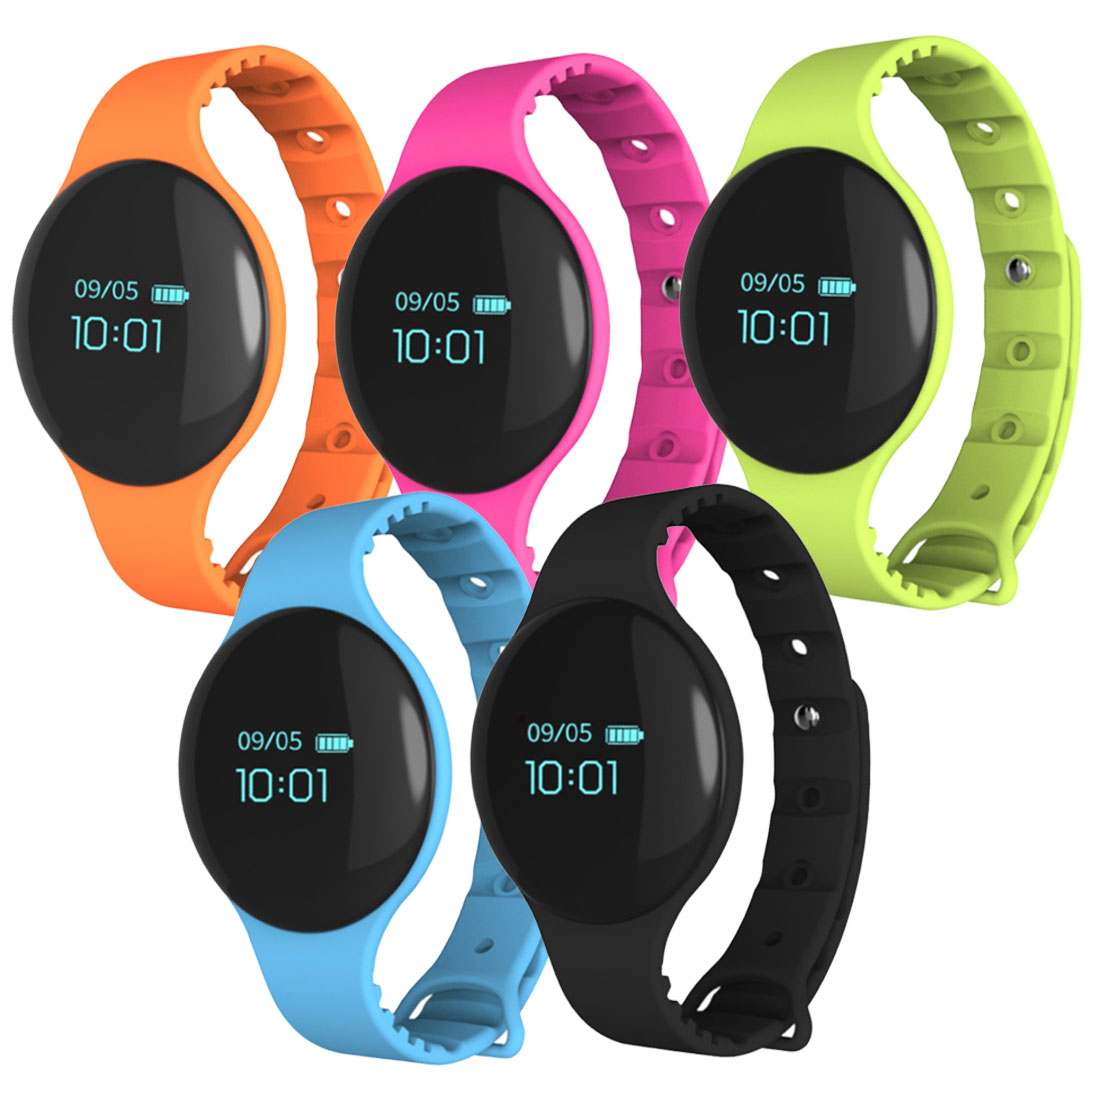 Color Touch Screen Smartwatch Motion detection Smart Watch Sport Fitness Children Wearable Devices For IOS Android-in Smart Watches from Consumer Electronics on AliExpress